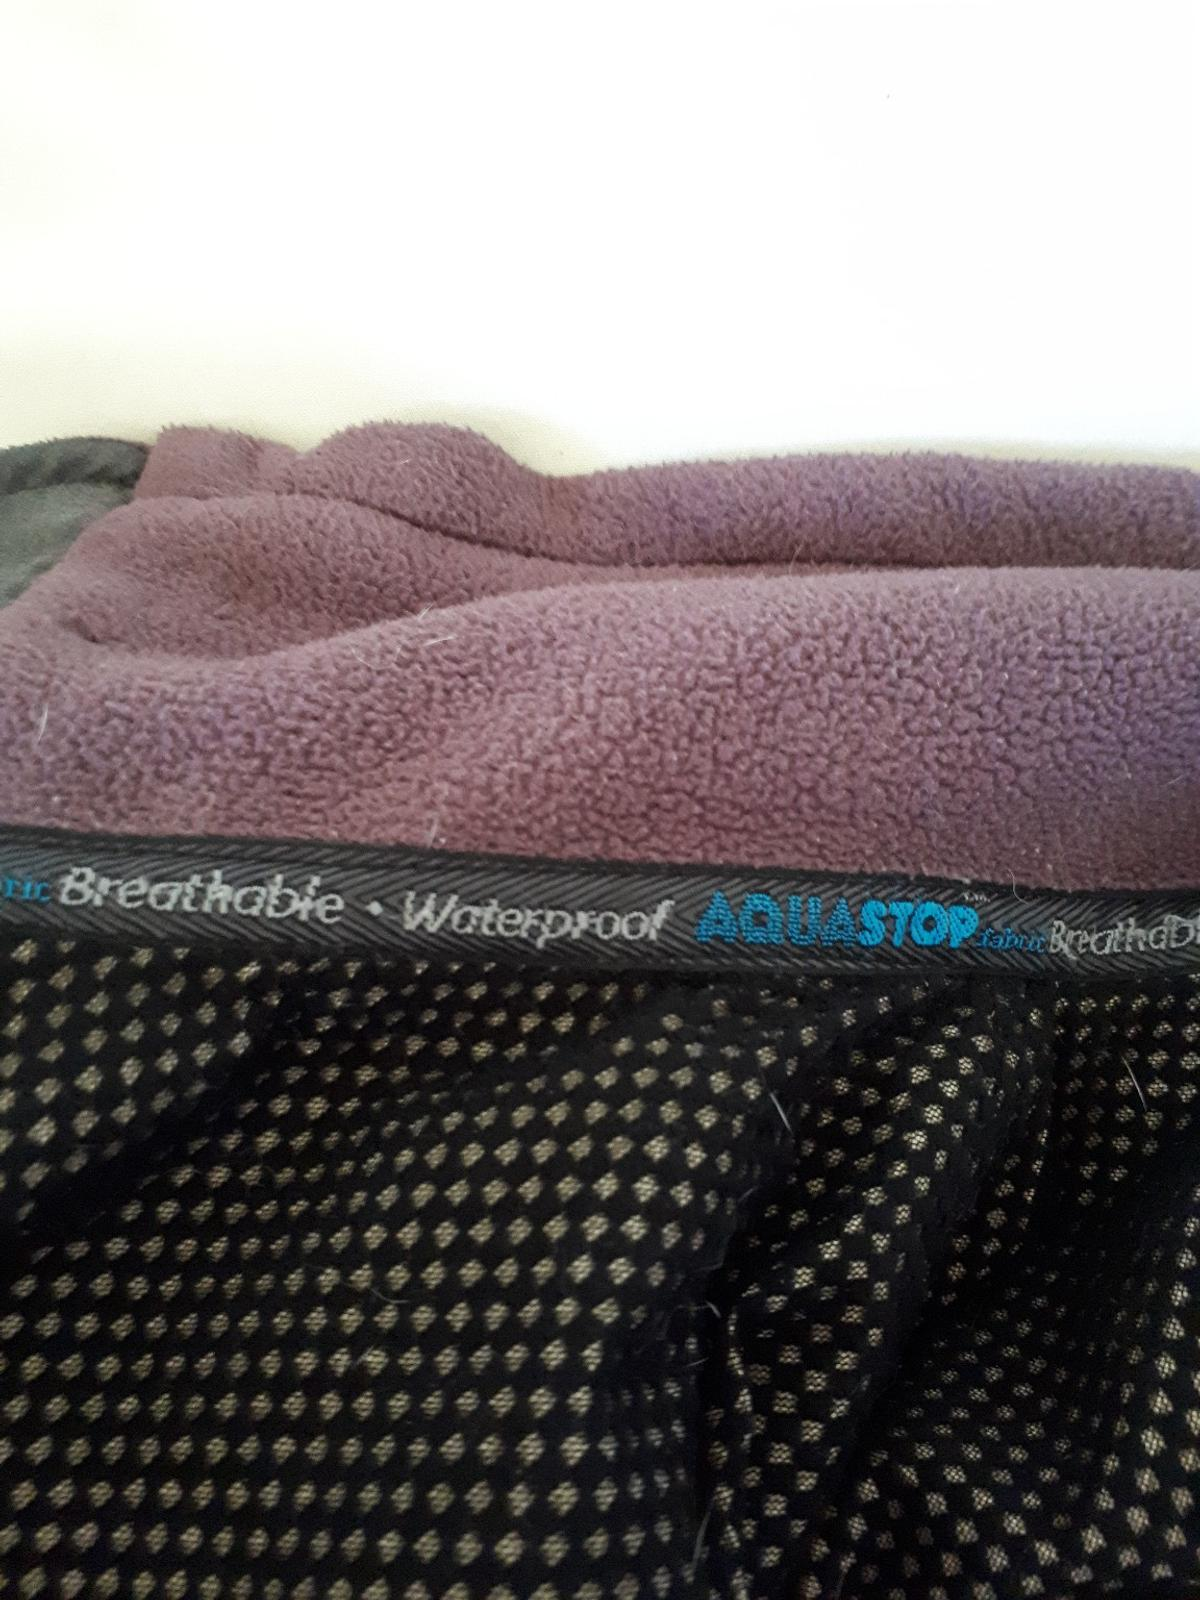 breathable/waterproof Aquastop fleece. size 18 with 2 pockets and zip fastener. Very warm and perfect when wet and windy. Really good for hiking and camping or just for winter. Quality waterproof jacket.